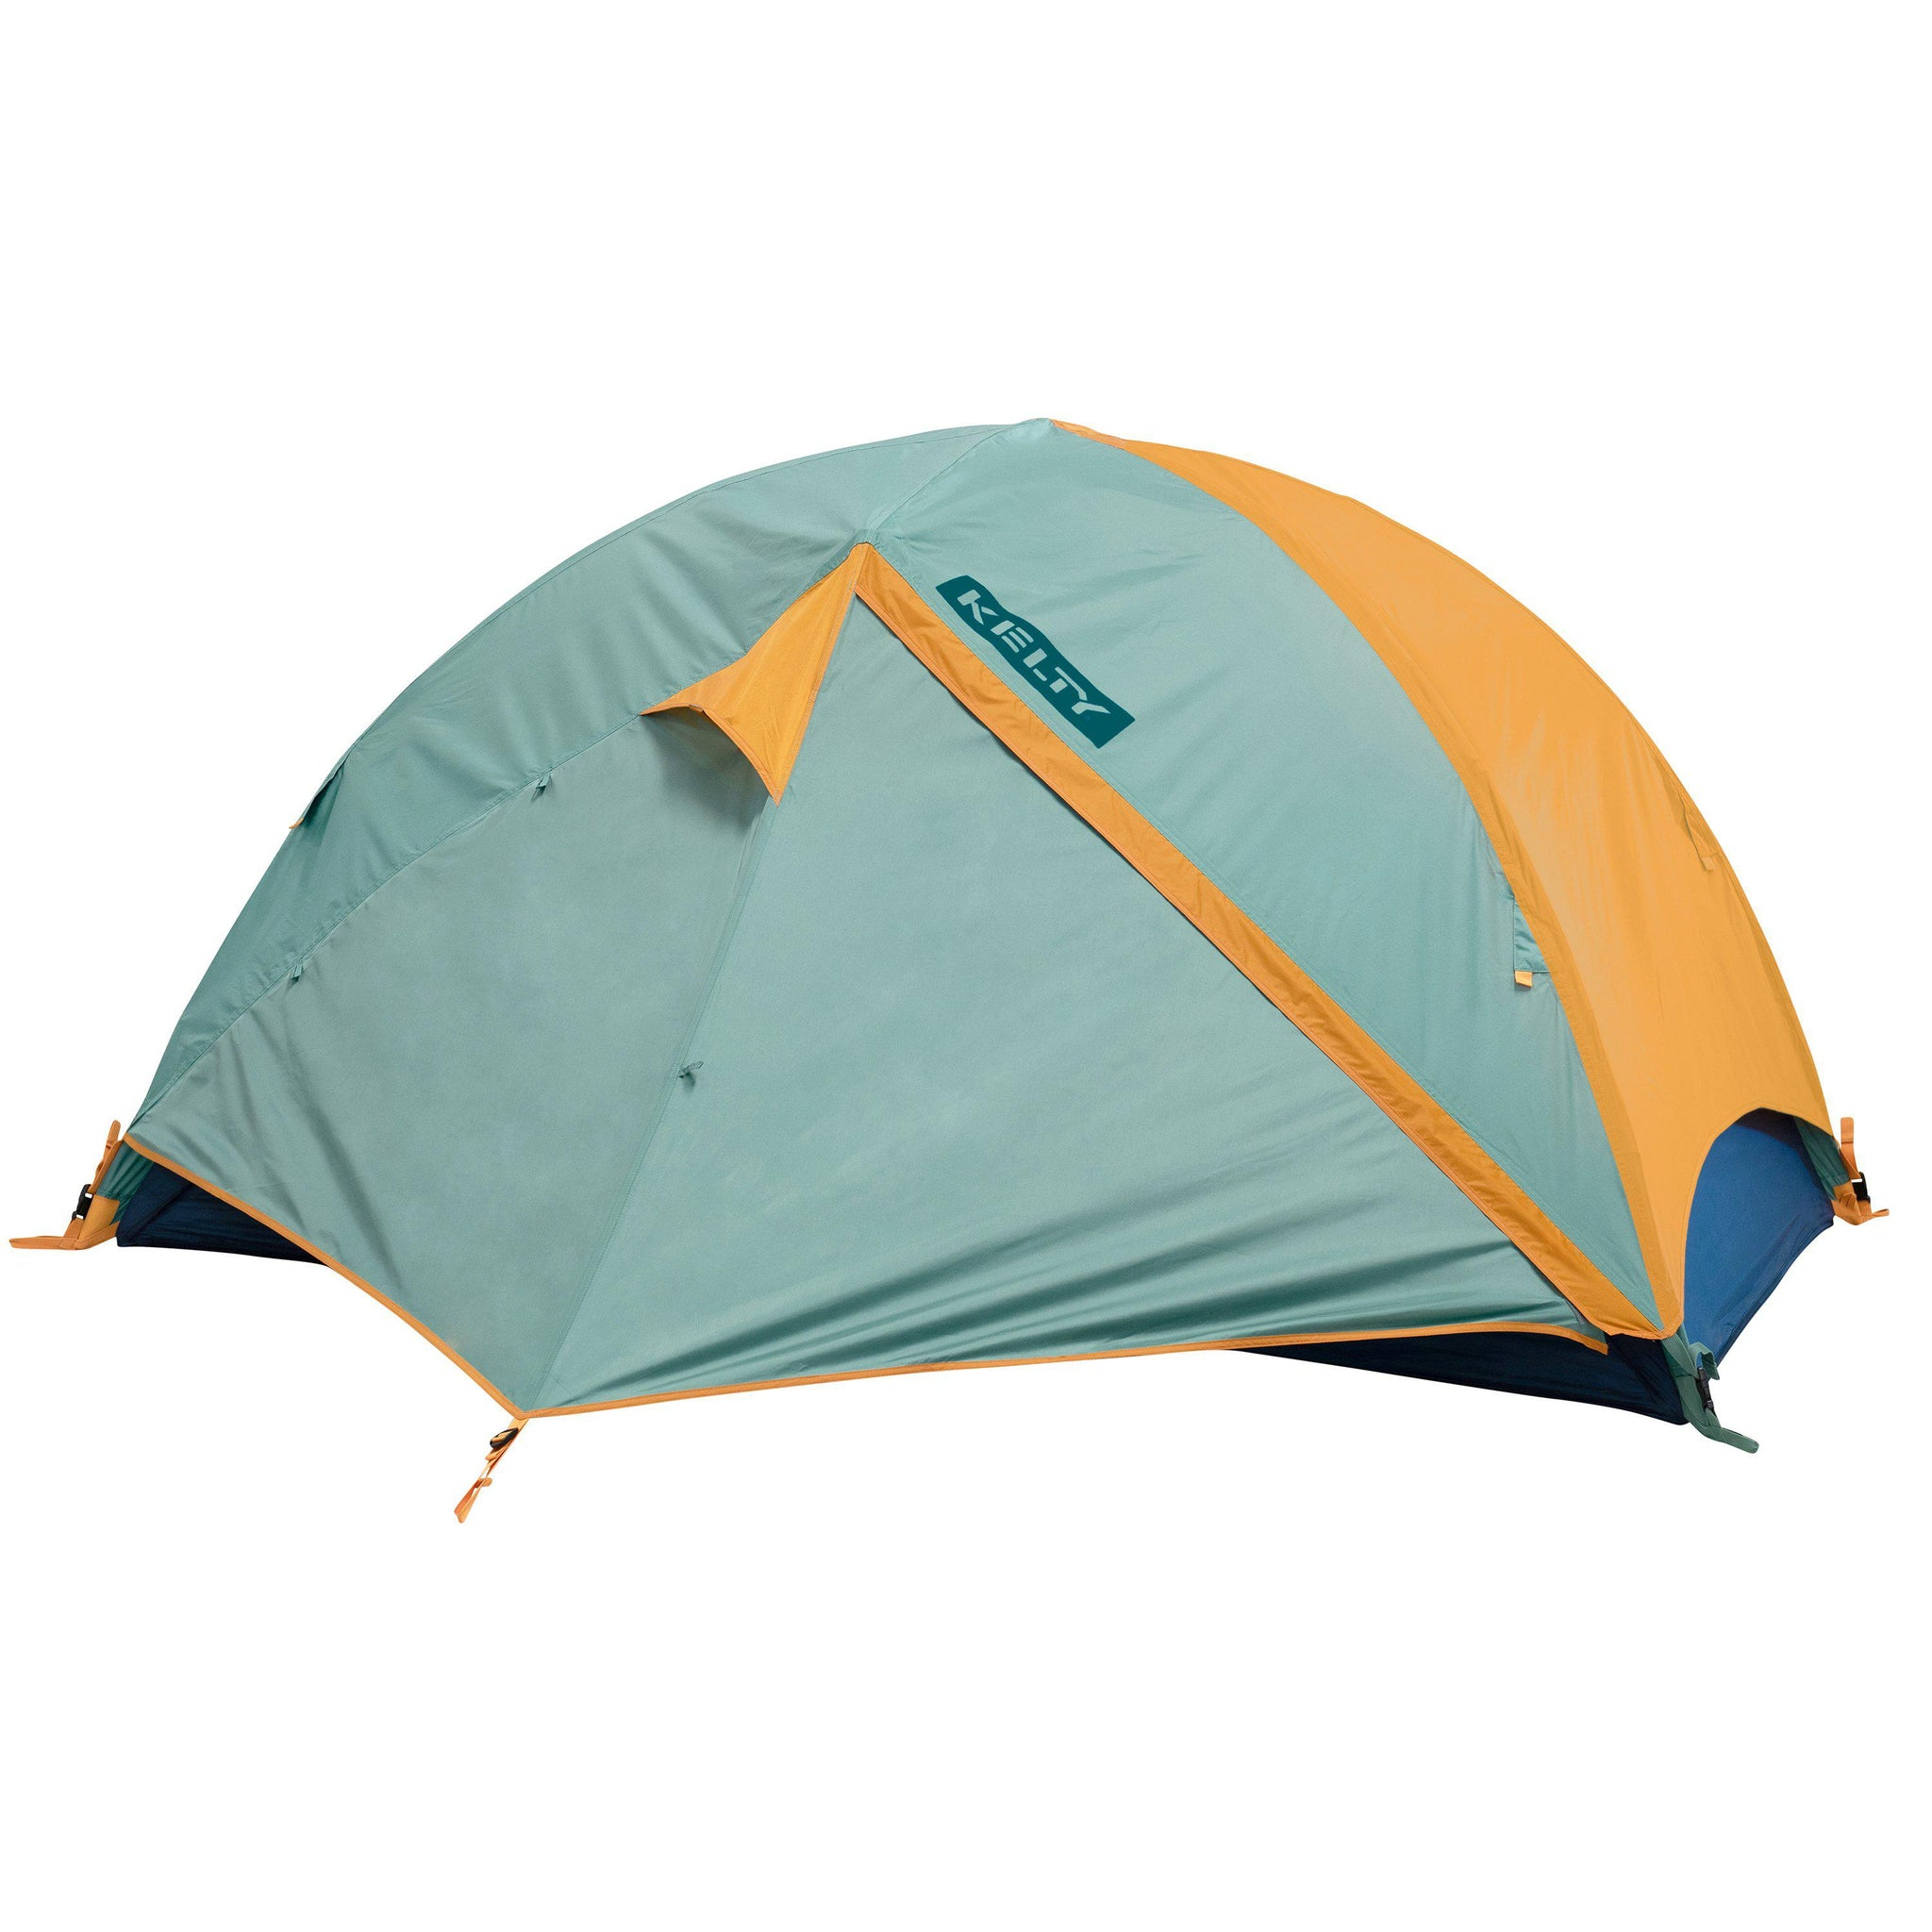 Kelty Wireless - Freestanding Camping Tent - 2 Person